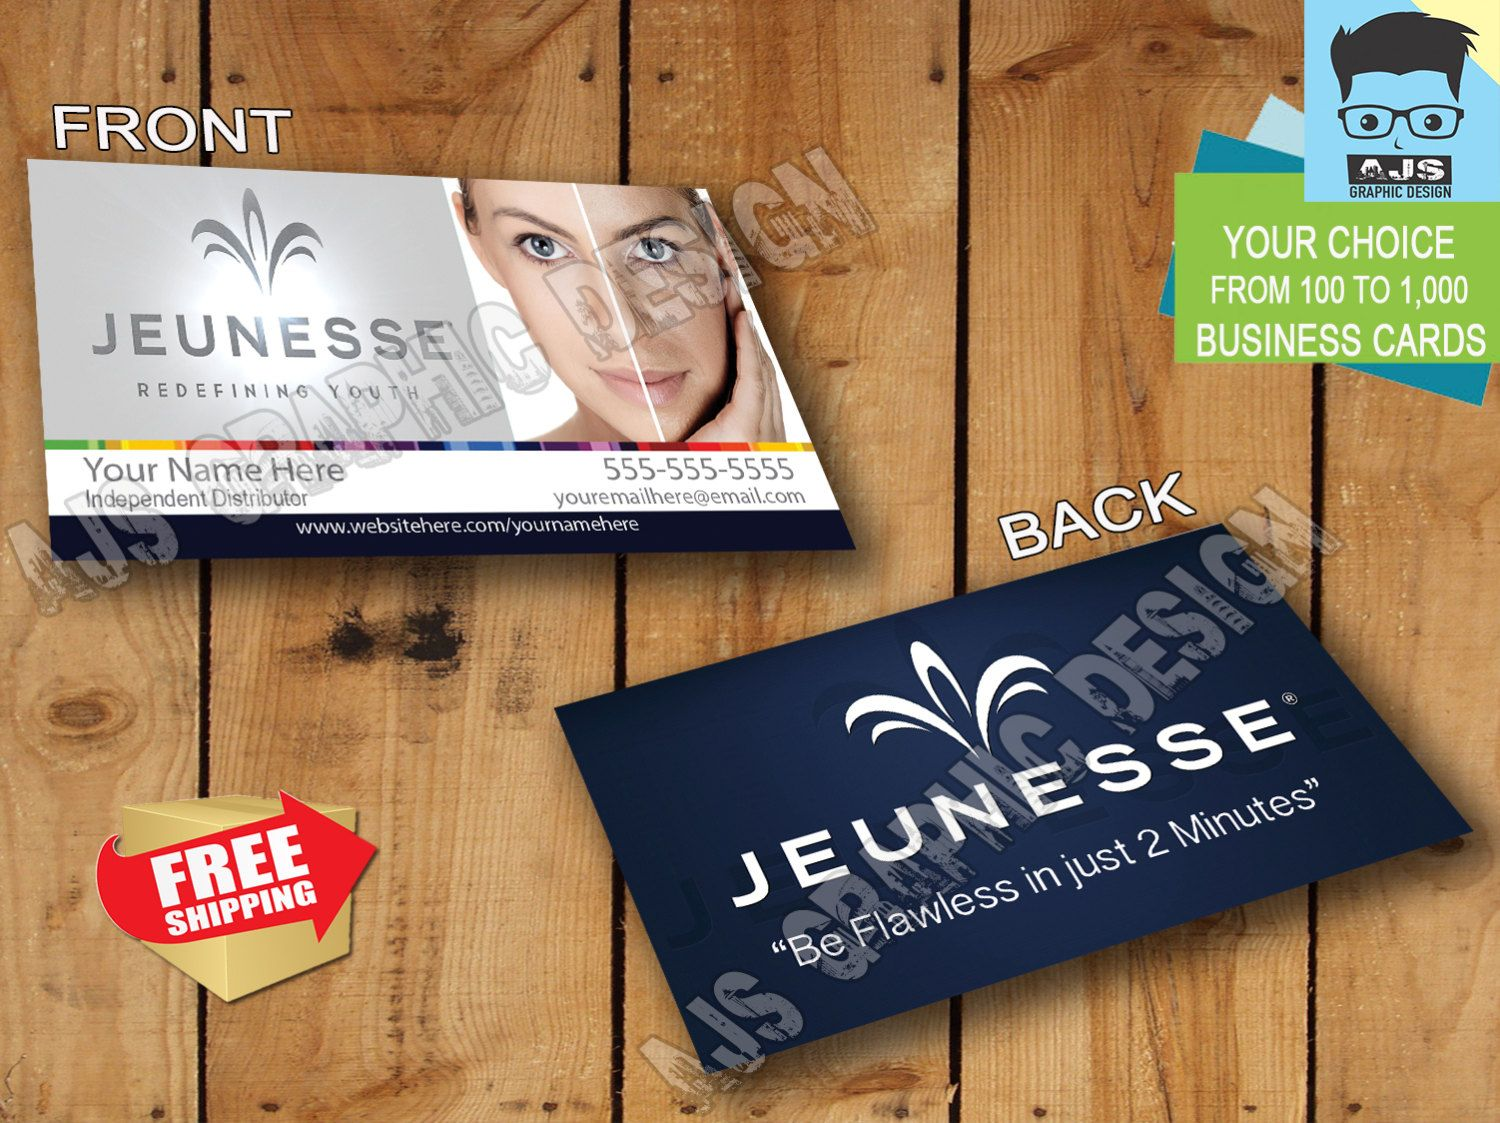 Jeunesse Global Business Cards • Customized • Order from 100 to ...